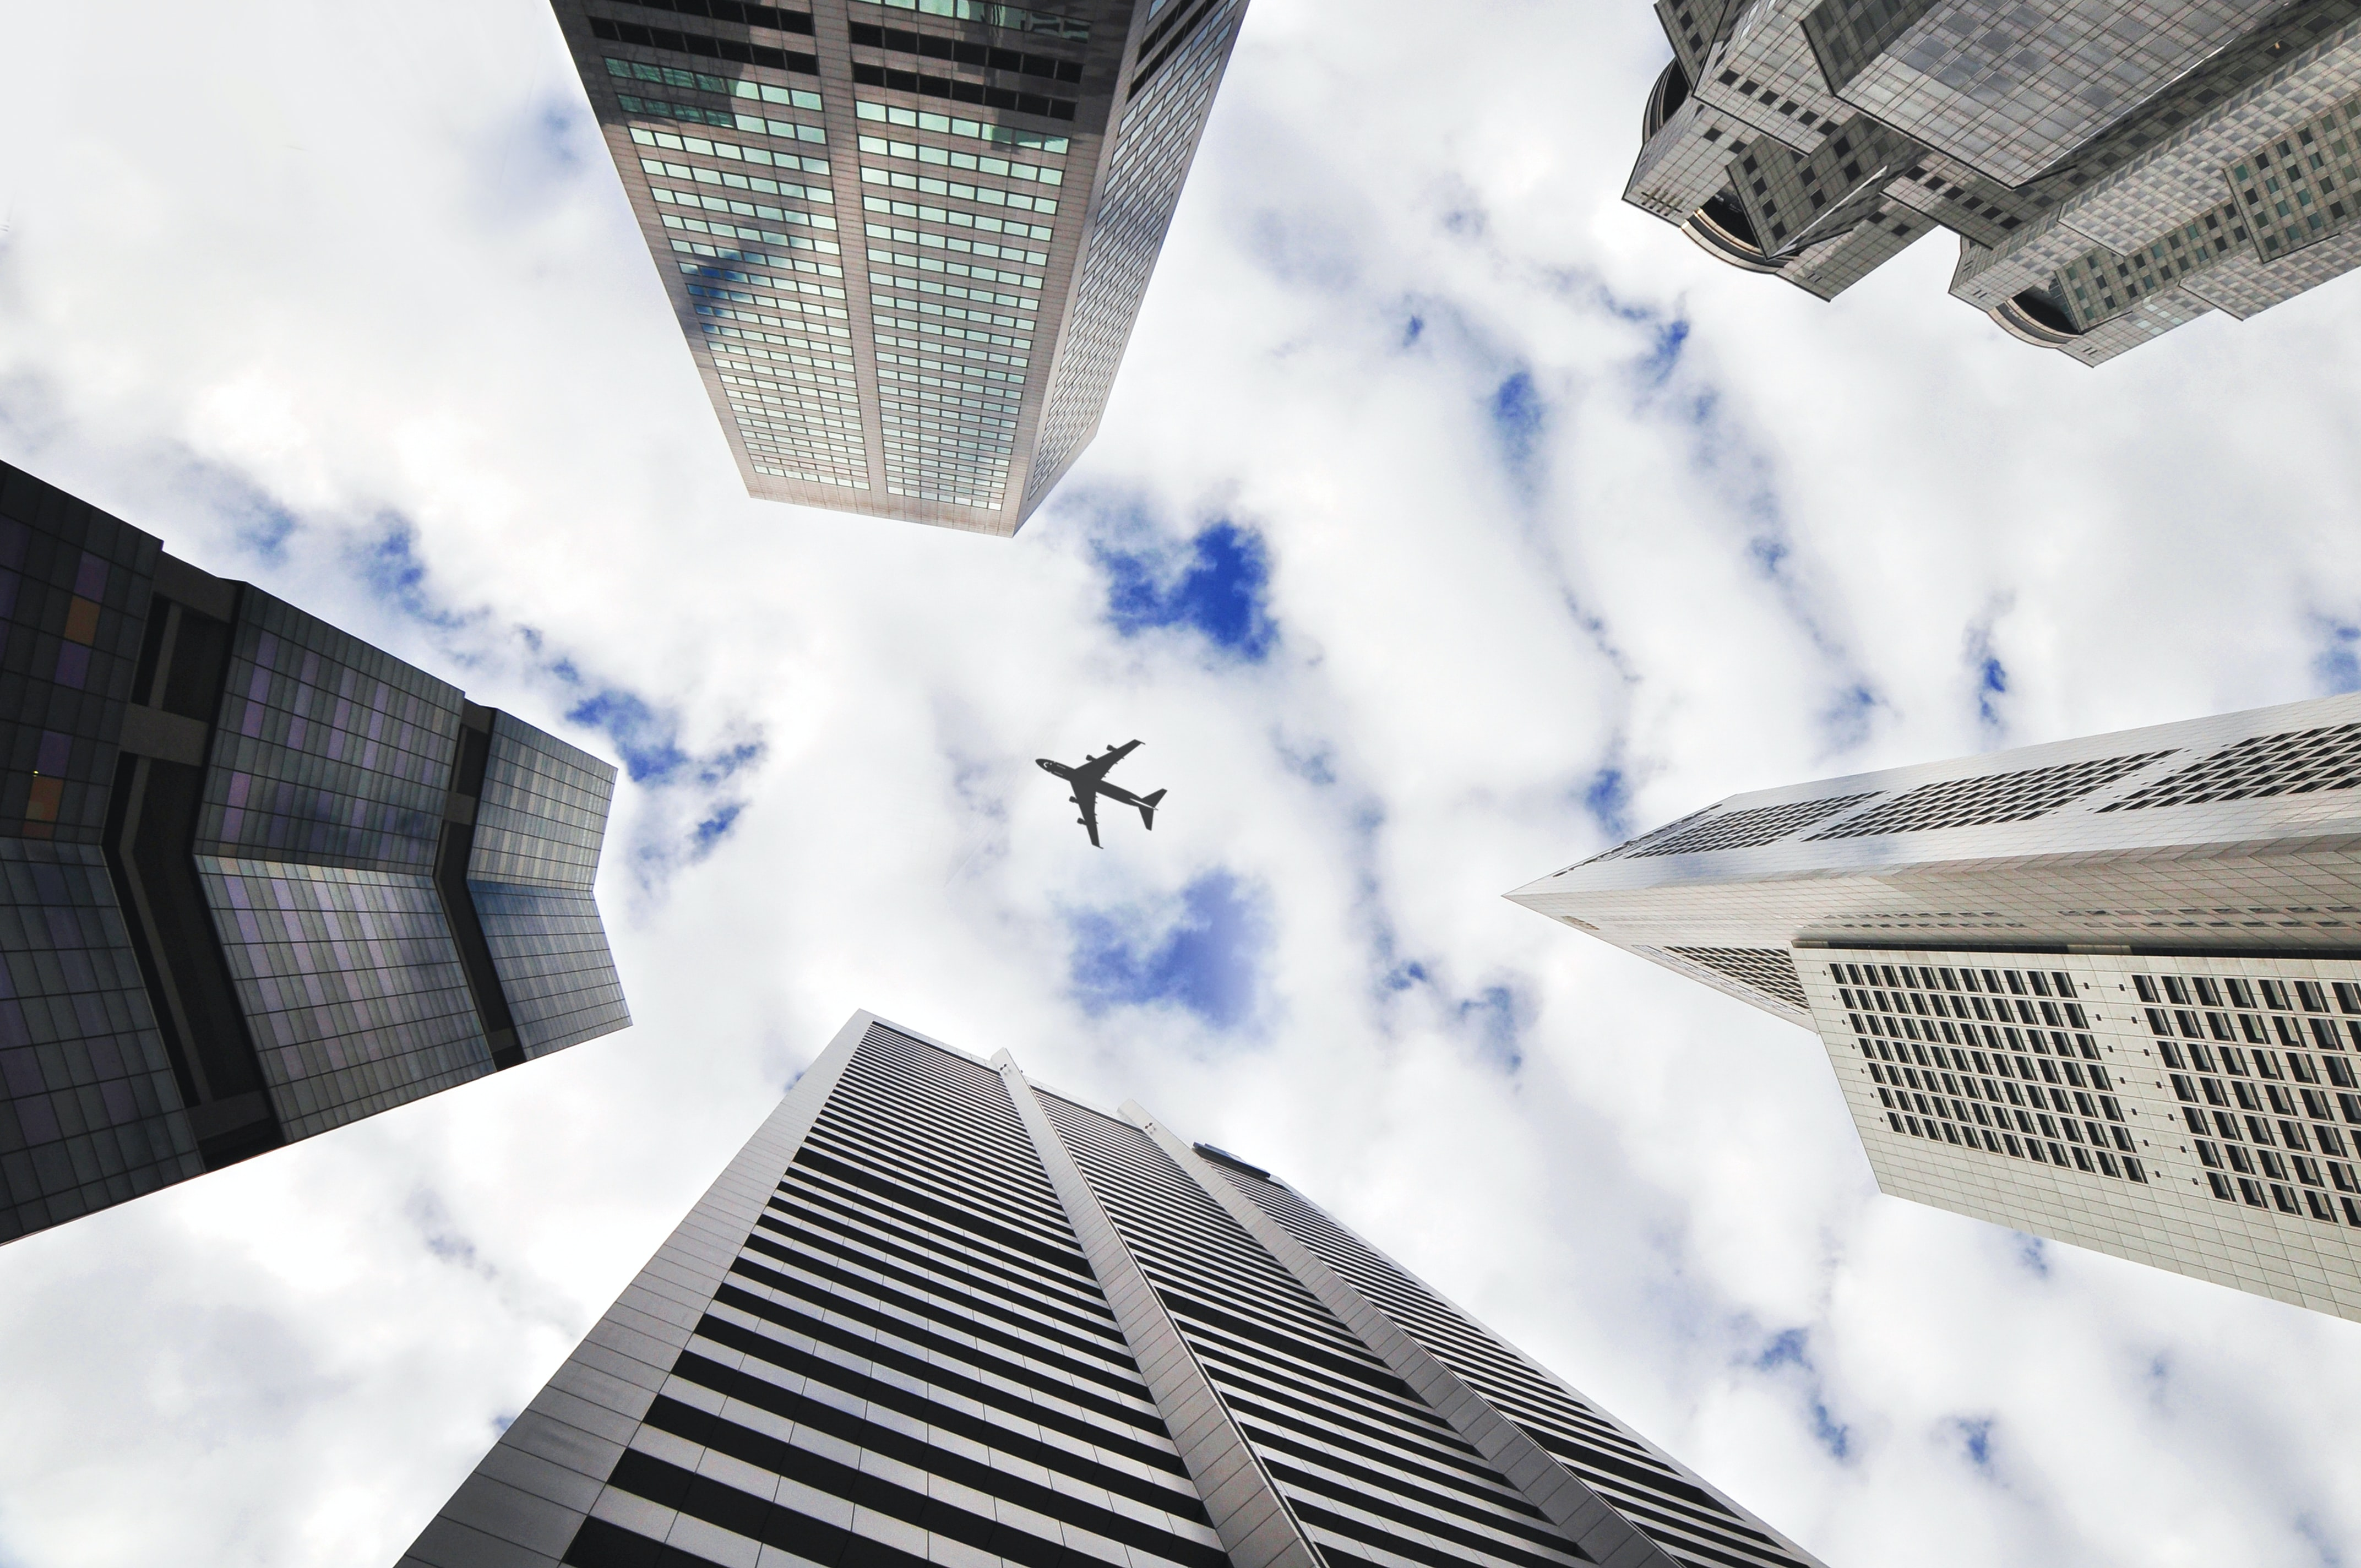 A low-angle shot of an airplane flying over tall skyscrapers